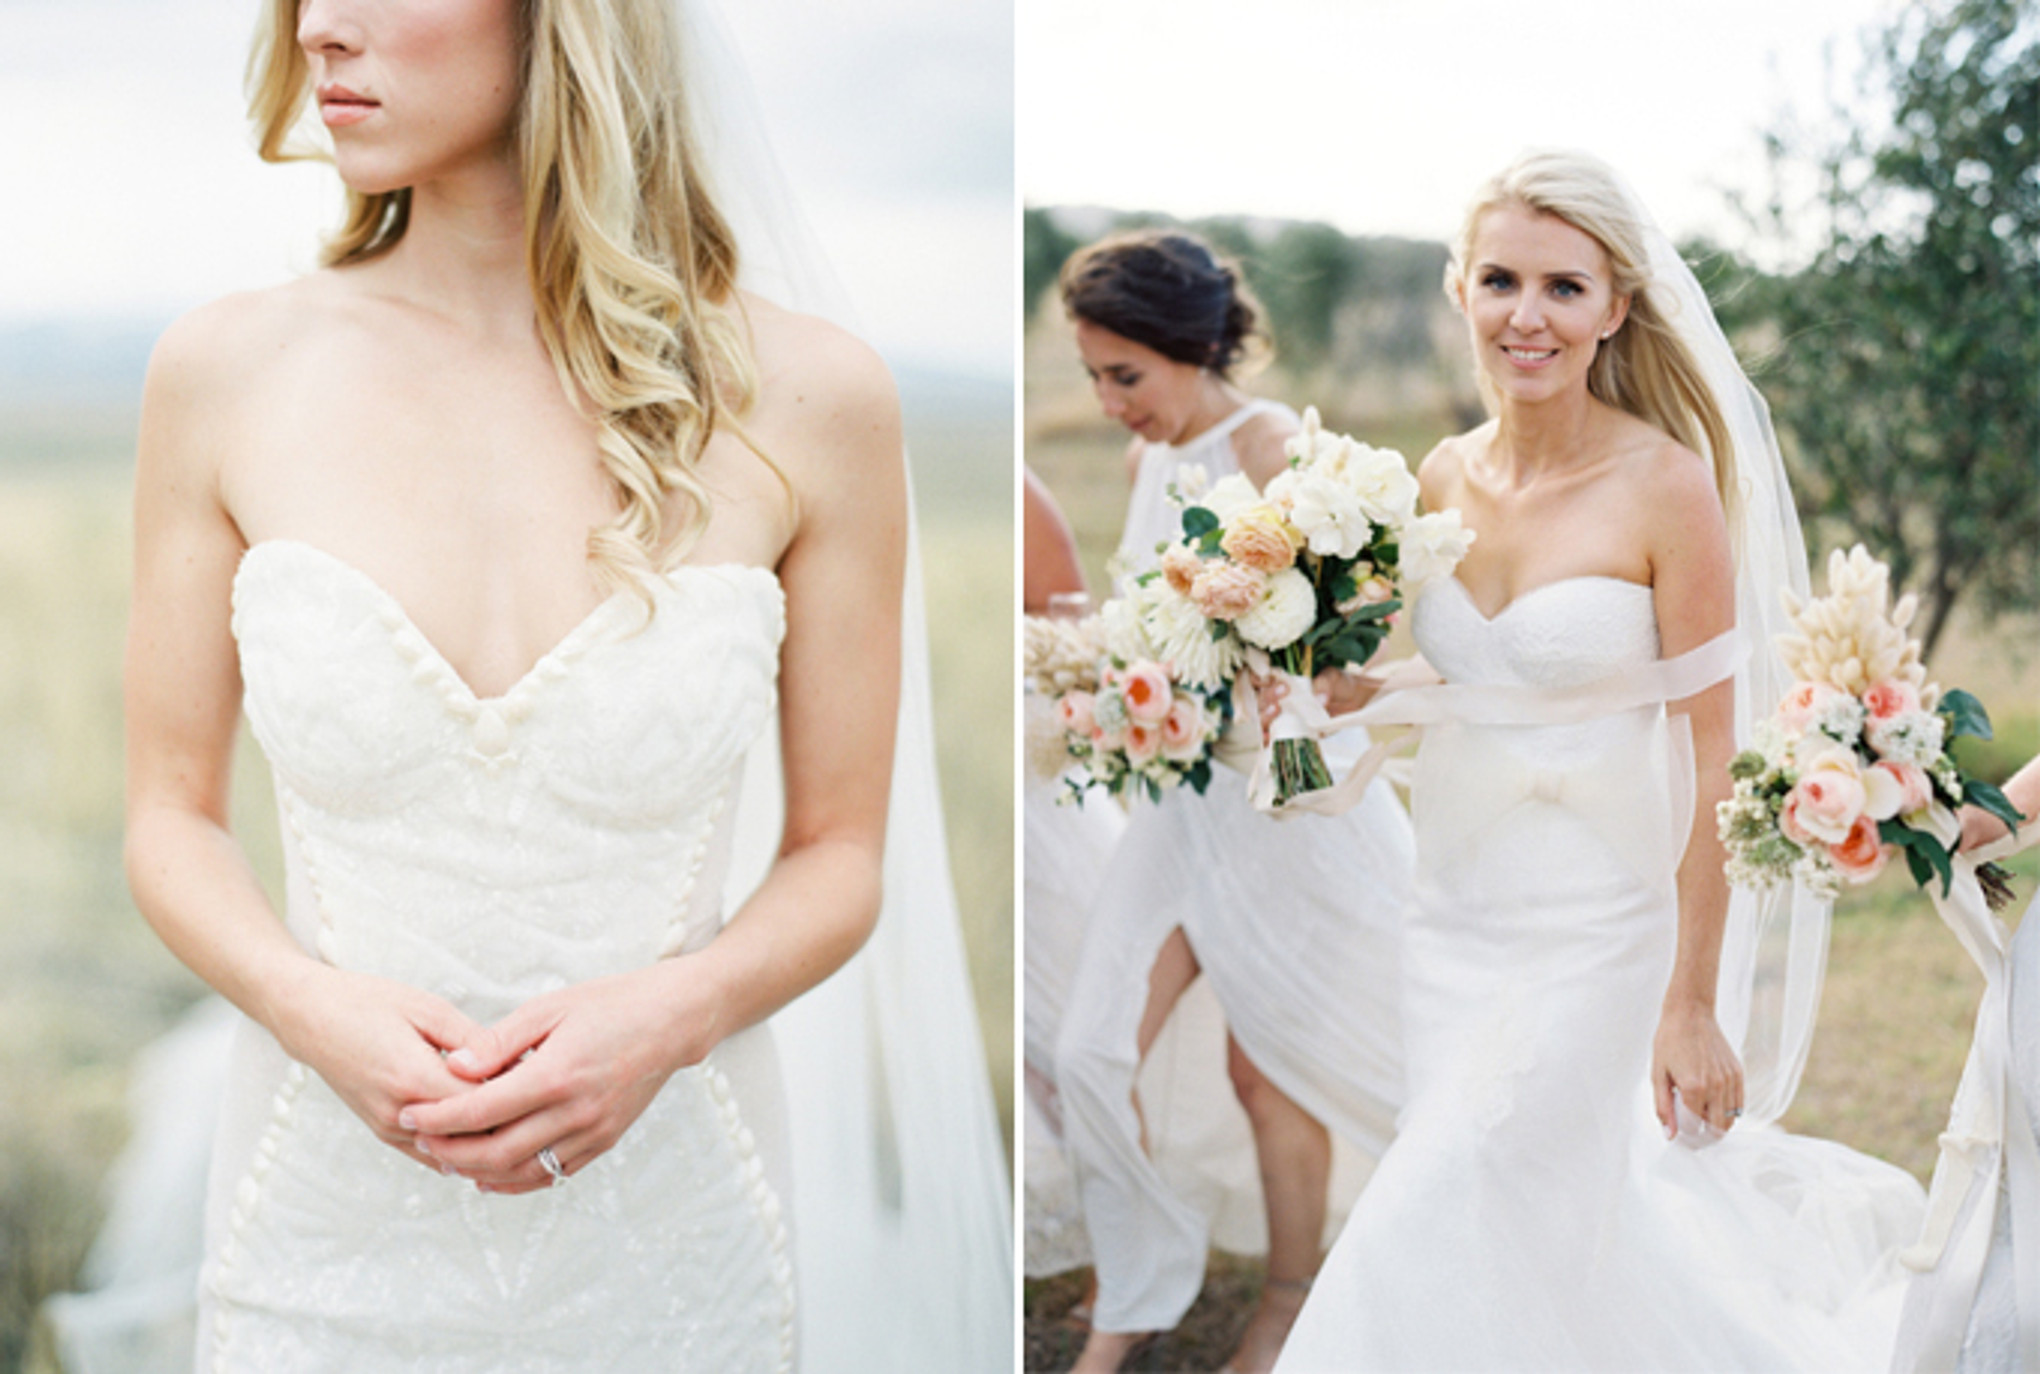 The Bride S Guide To Finding The Perfect Wedding Dress